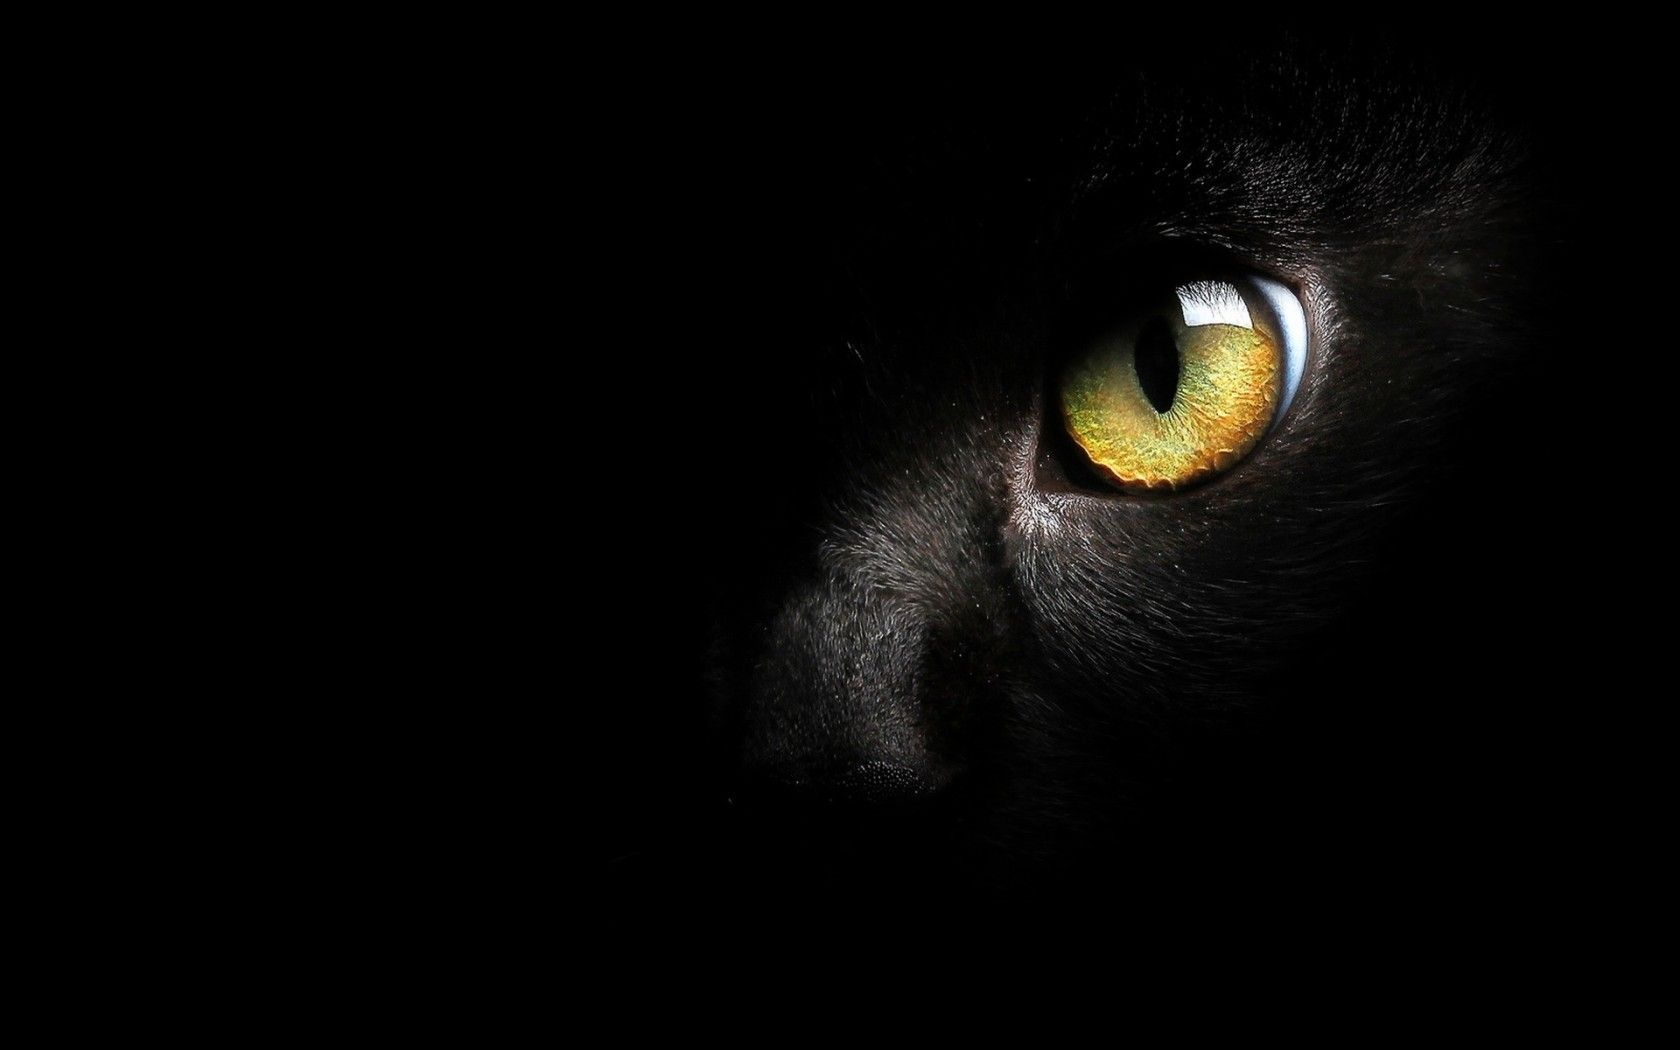 Pin By Love Care For Paws On Cats Eye Beauty In Dark Cat Wallpaper Eyes Wallpaper Cats